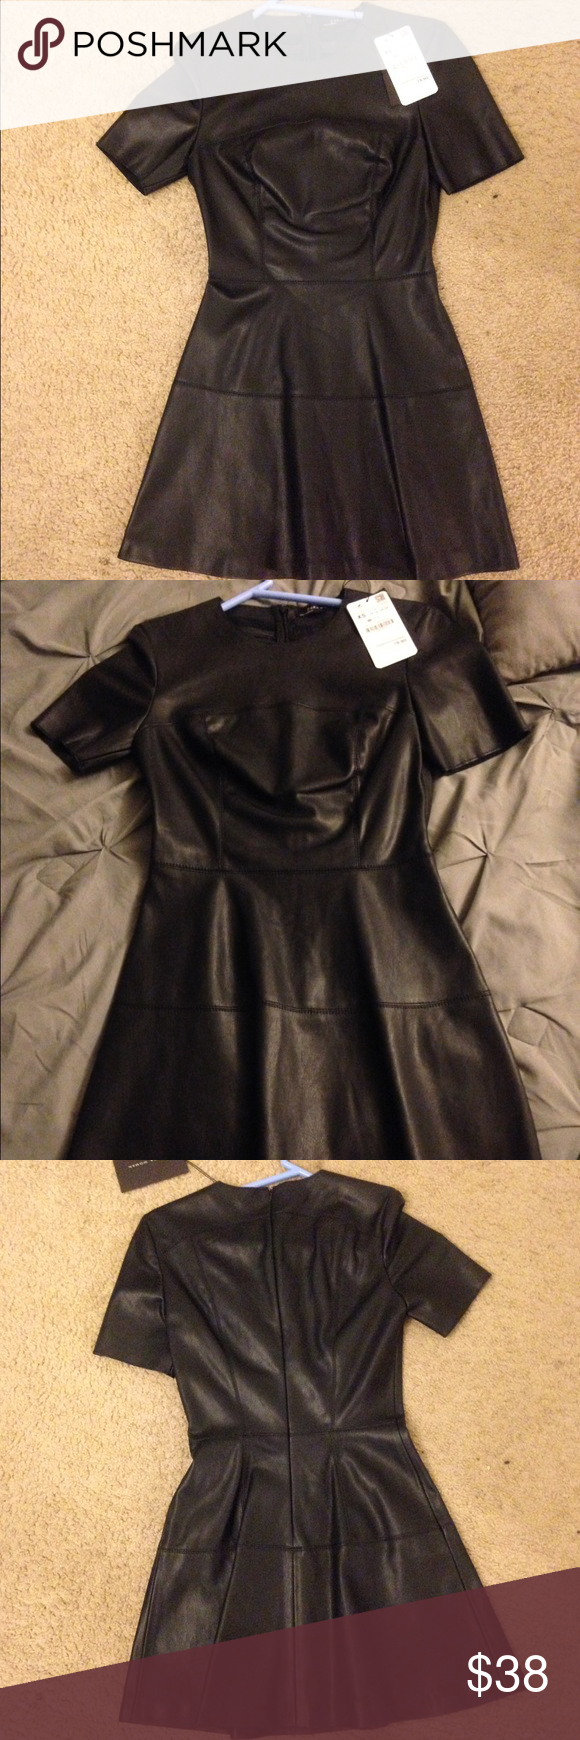 Zara leather dress Zara xs leather black skater dress. Never worn bought new but couldn't fit. No returns. Zara Dresses